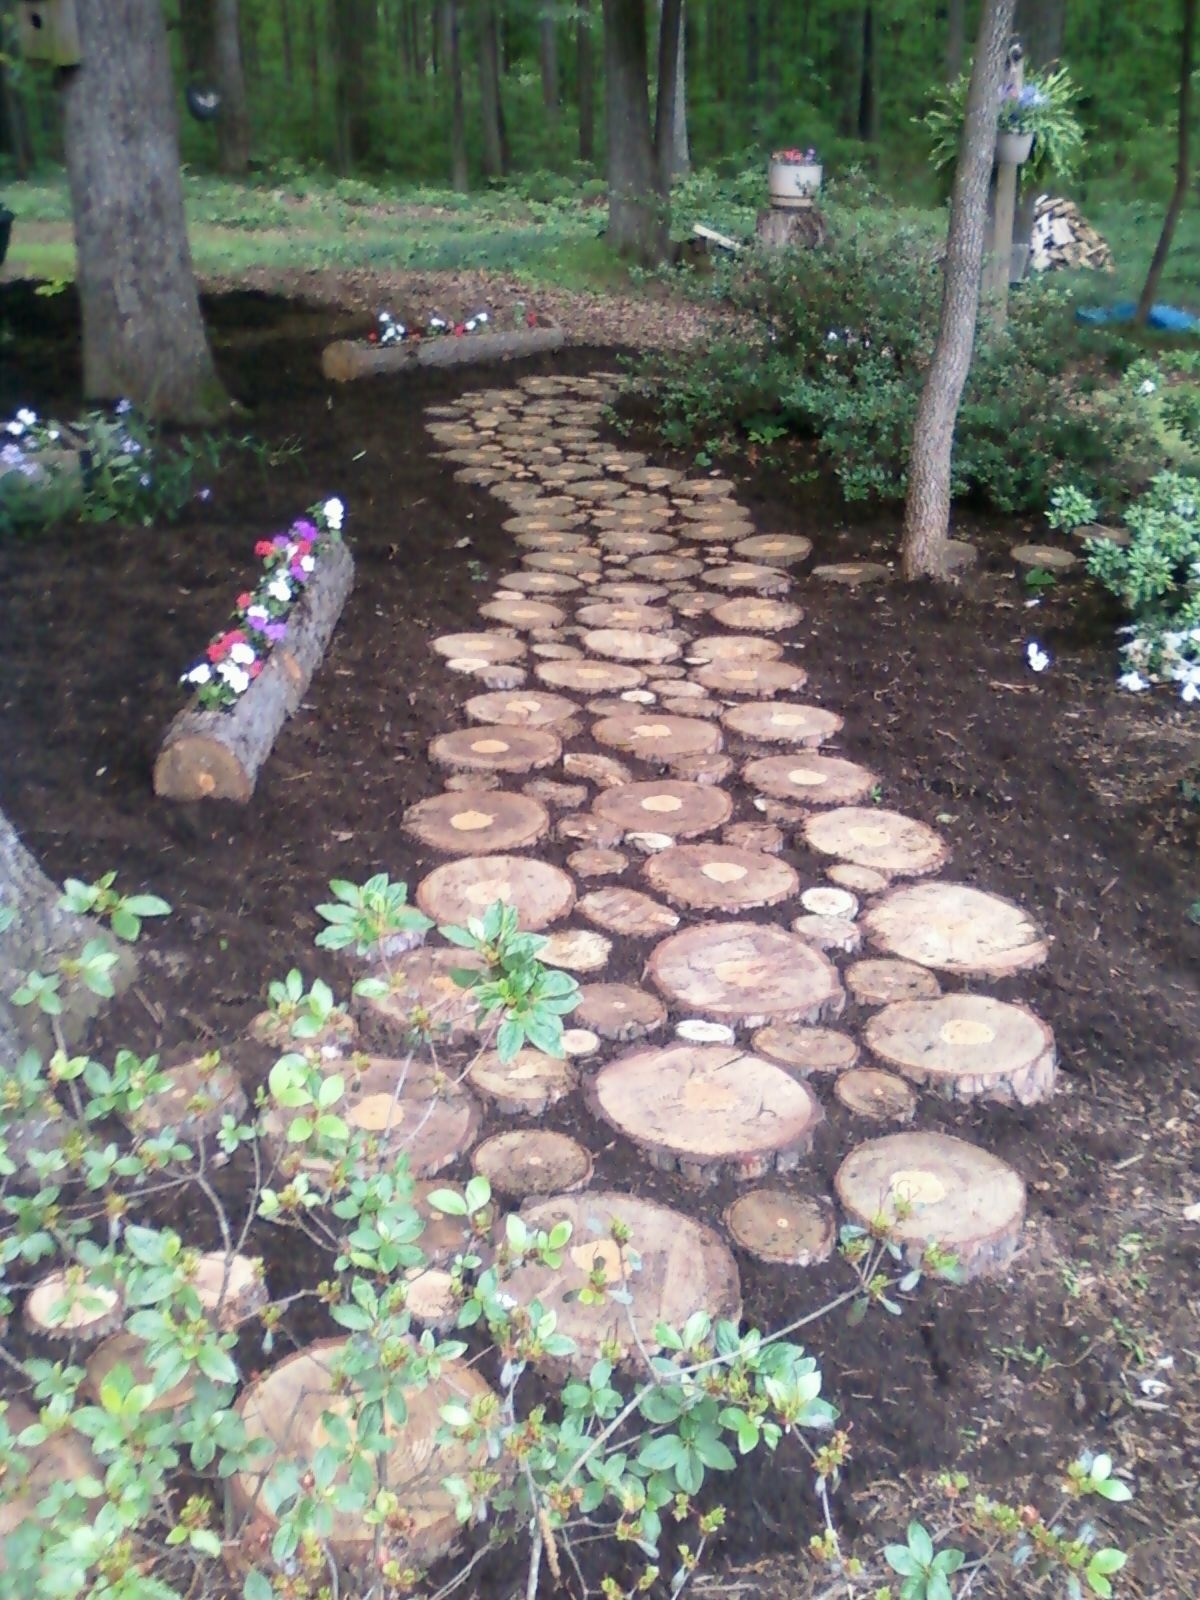 Image of: Used A Pine Tree For The Walk Cut Thick Slices What Was Left In Landscaping Logs Landscaping Logs Beautiful In The Garden